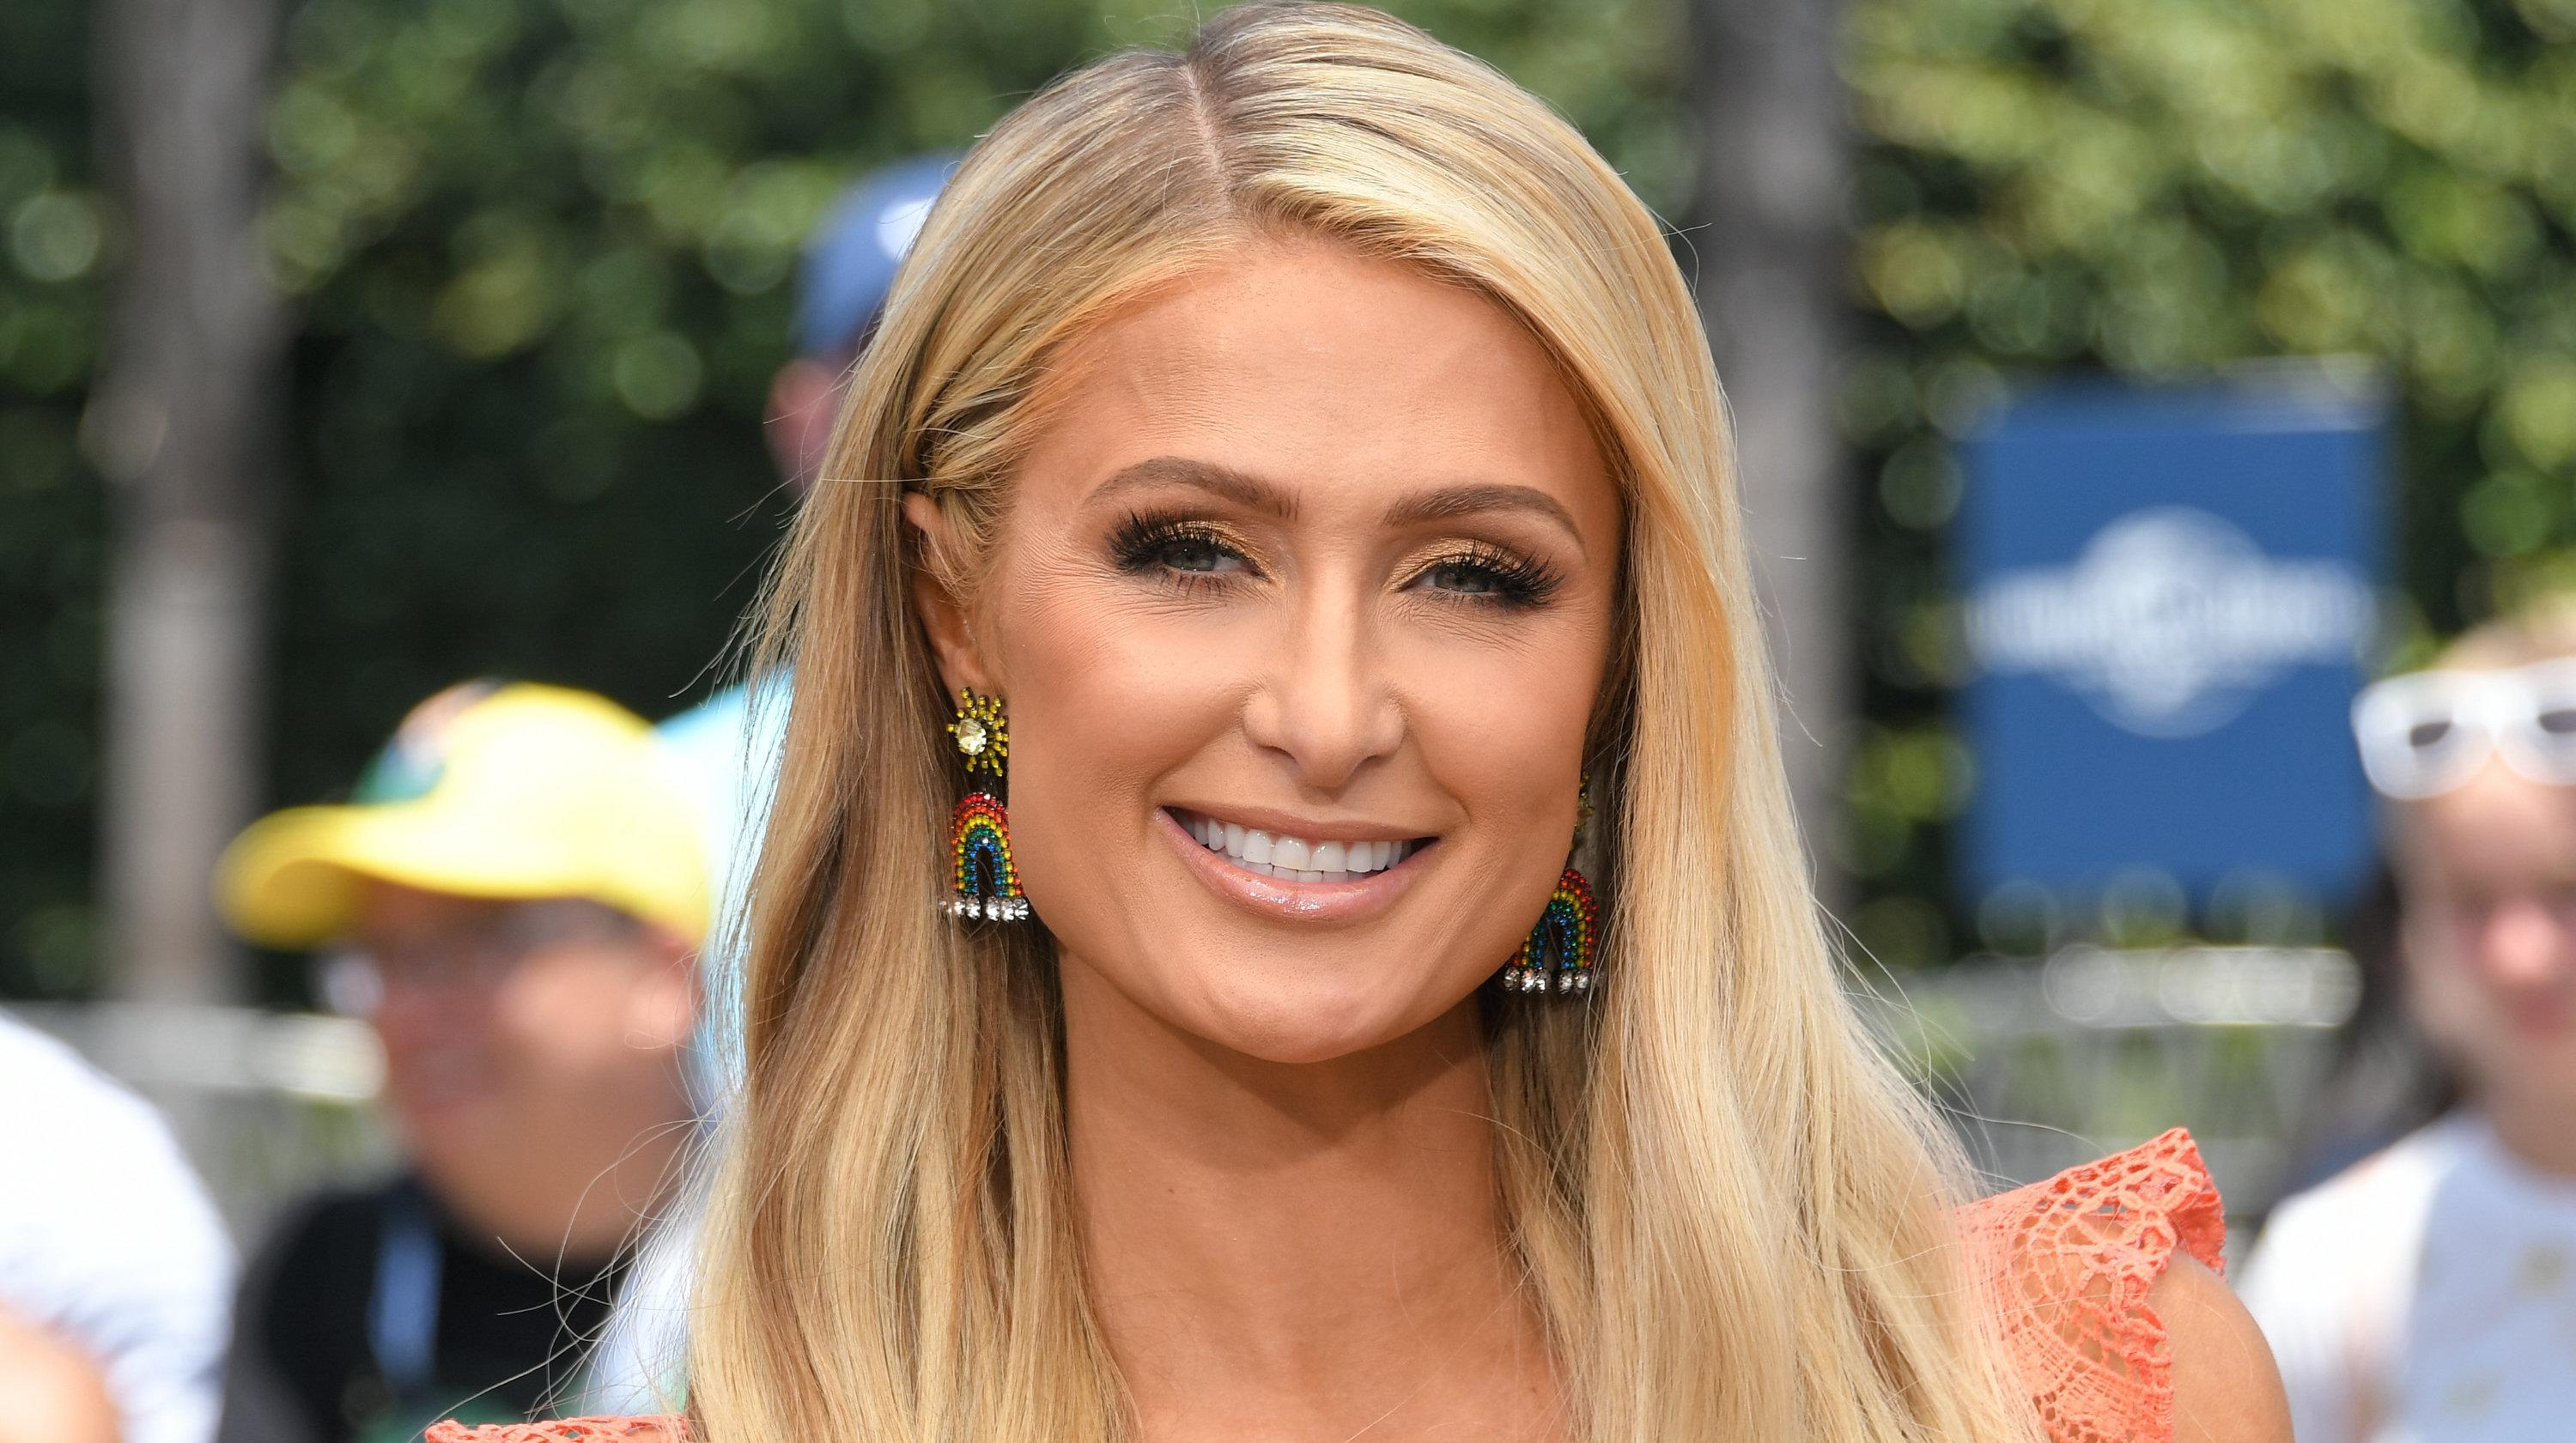 Paris Hilton Says She's 'Obviously' Self-Made, Just Like Kylie Jenner